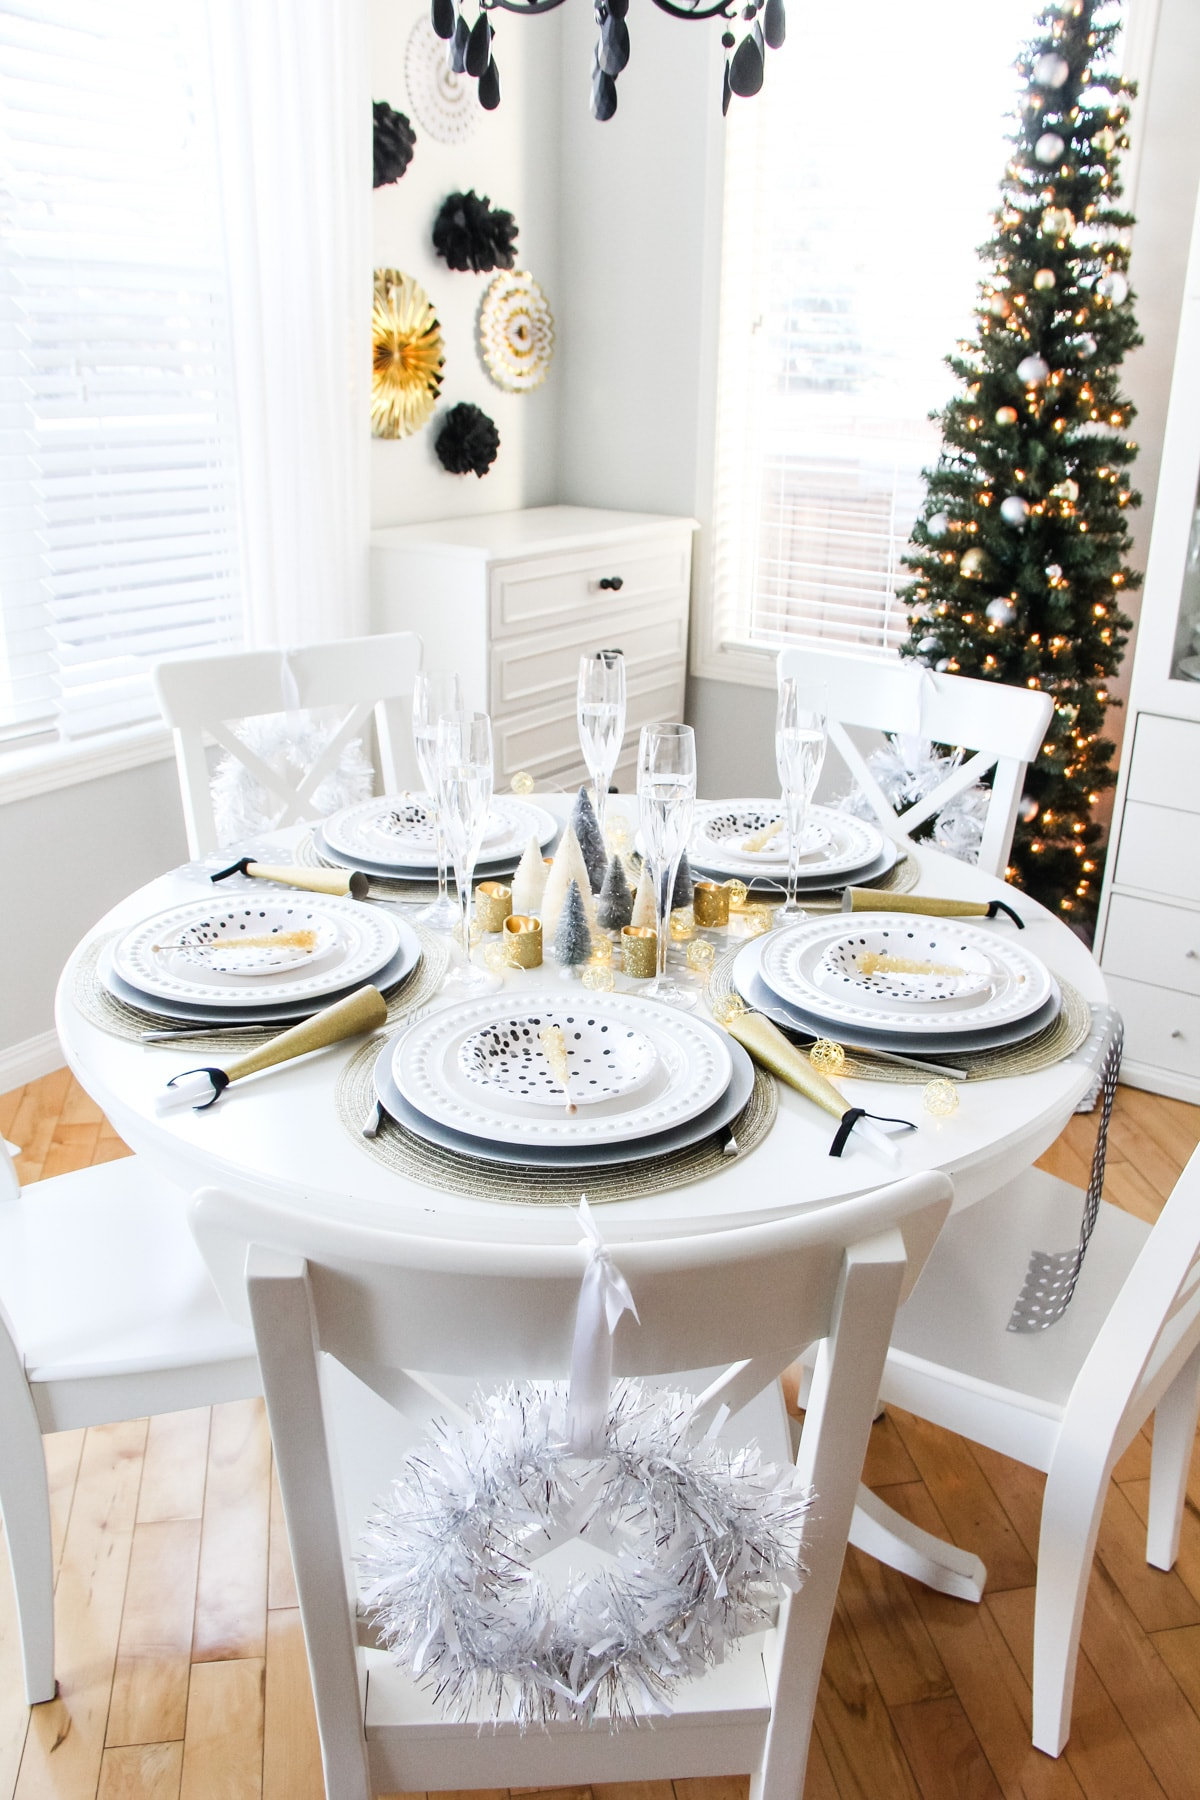 An Easy New Year's Eve Table